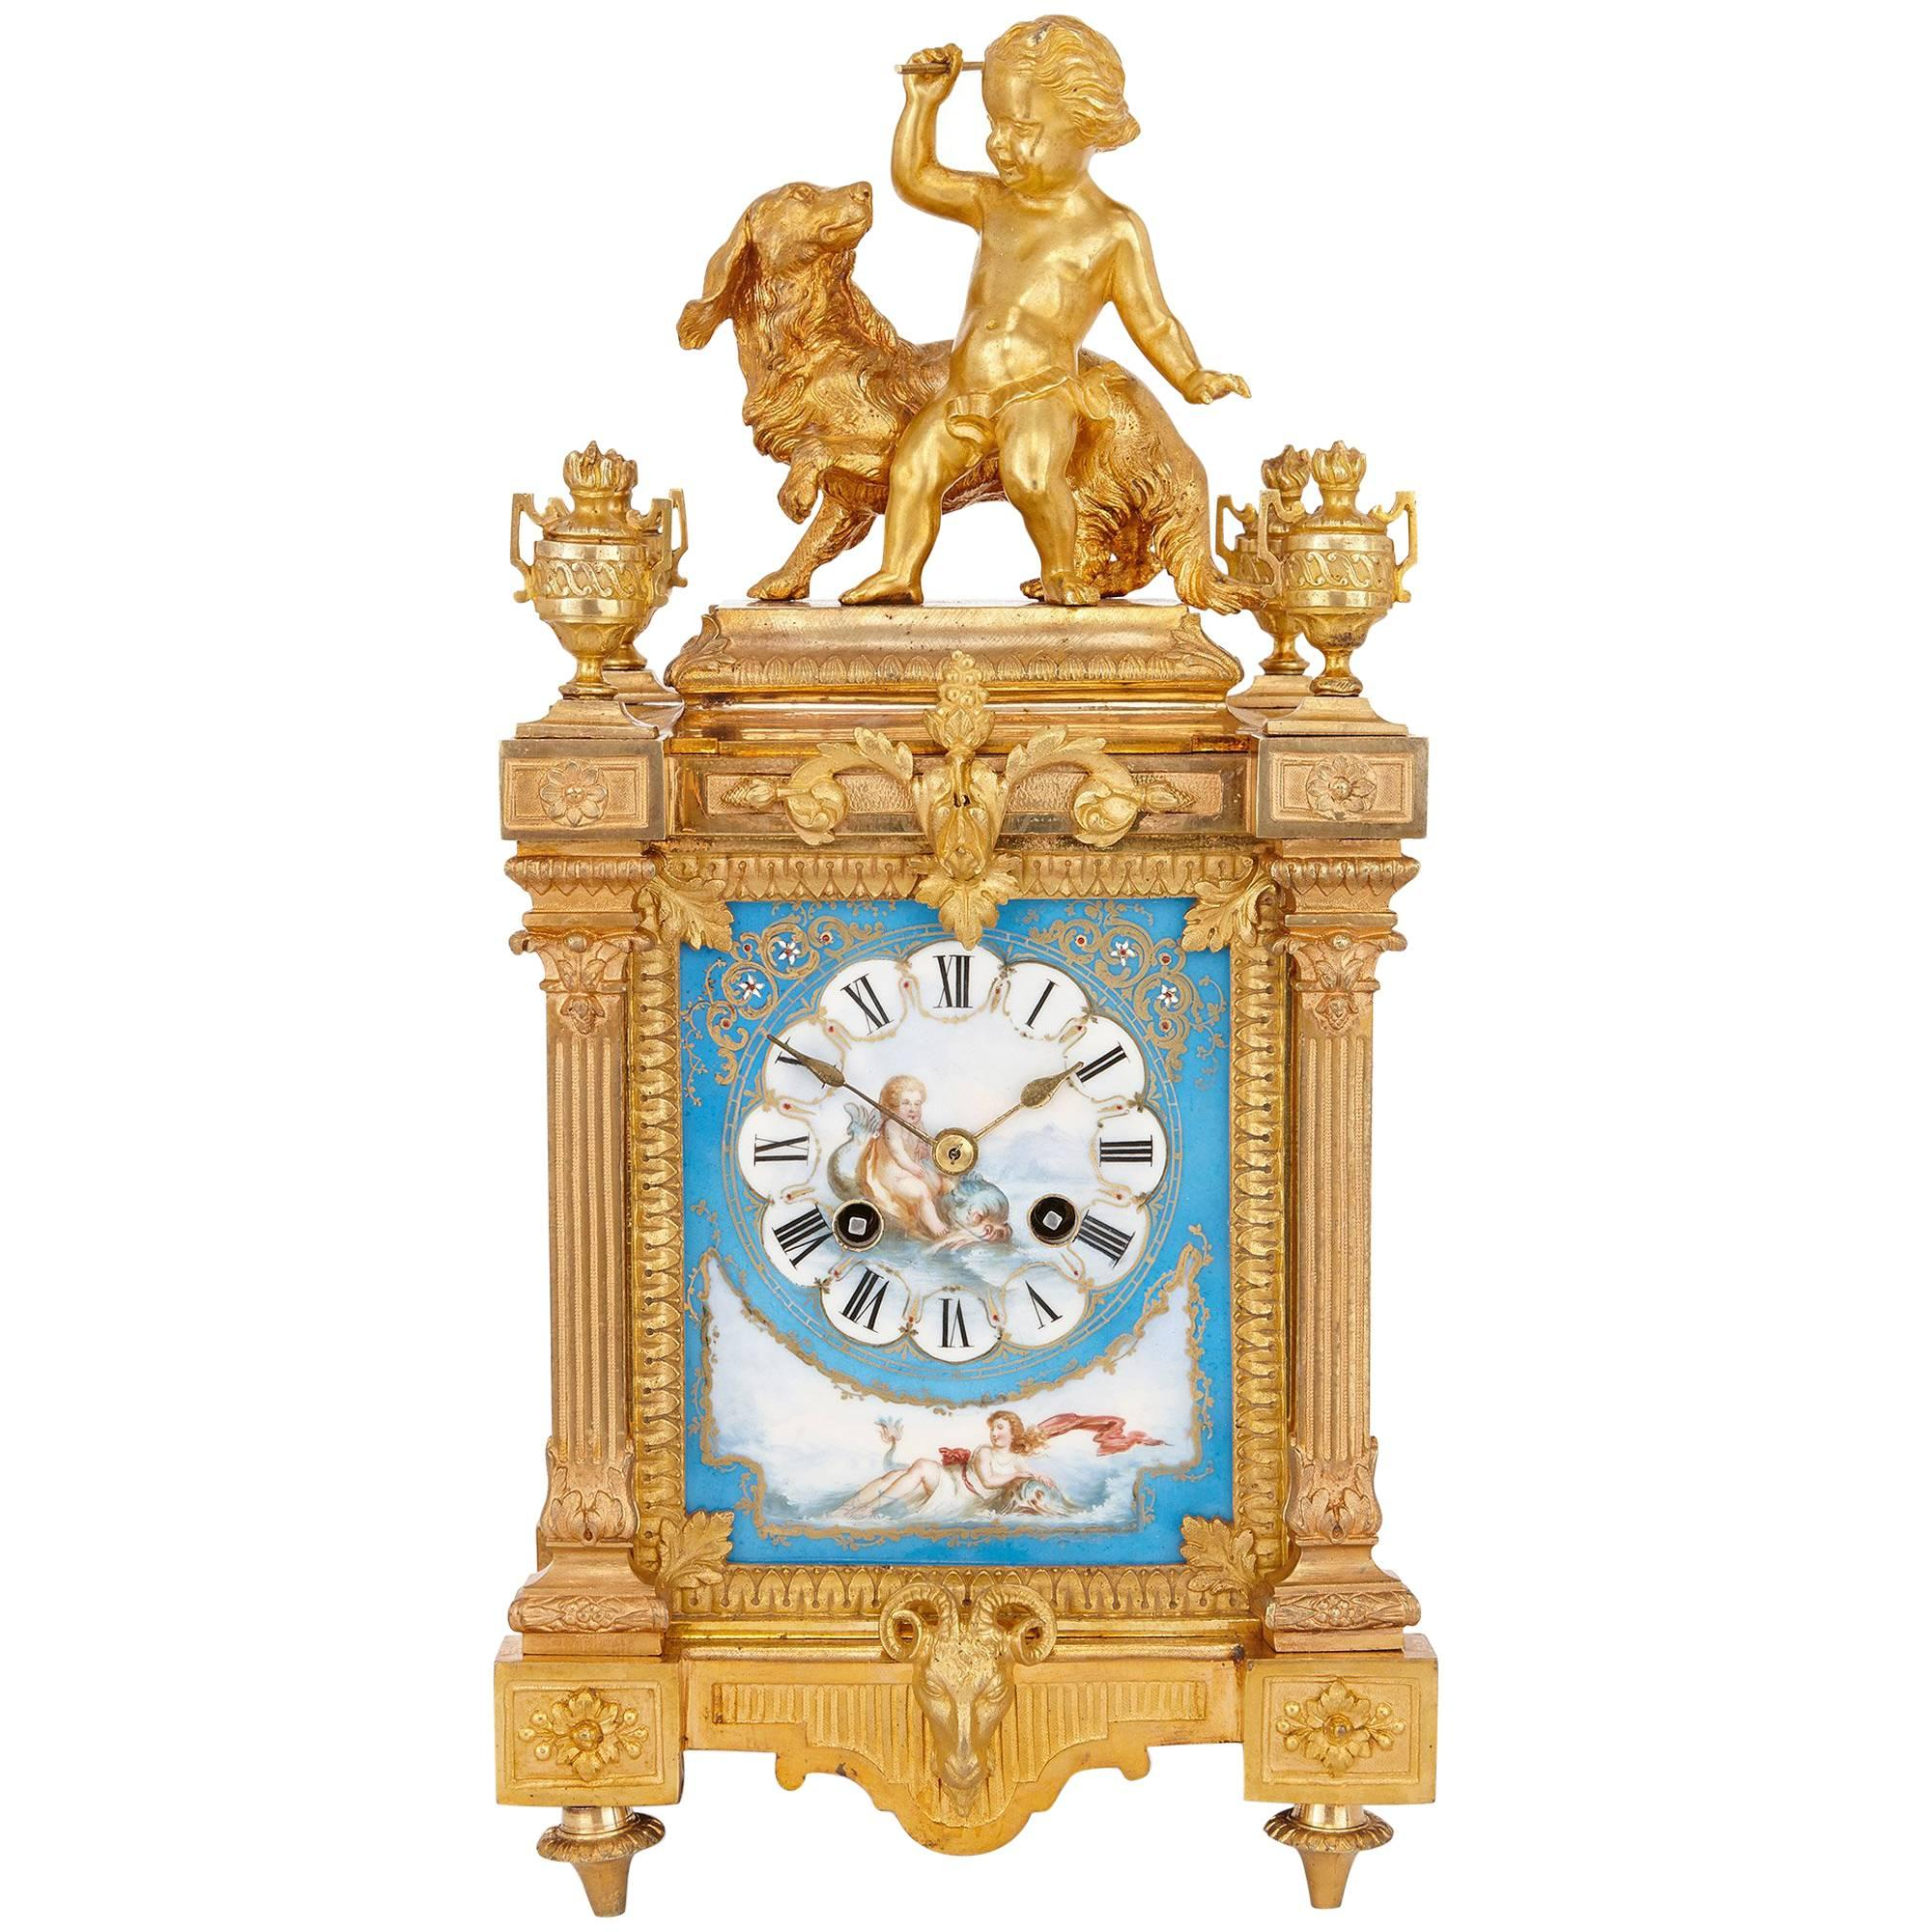 Neoclassical Mantel Clock in Ormolu and Sevres Style Porcelain by Ernest Royer